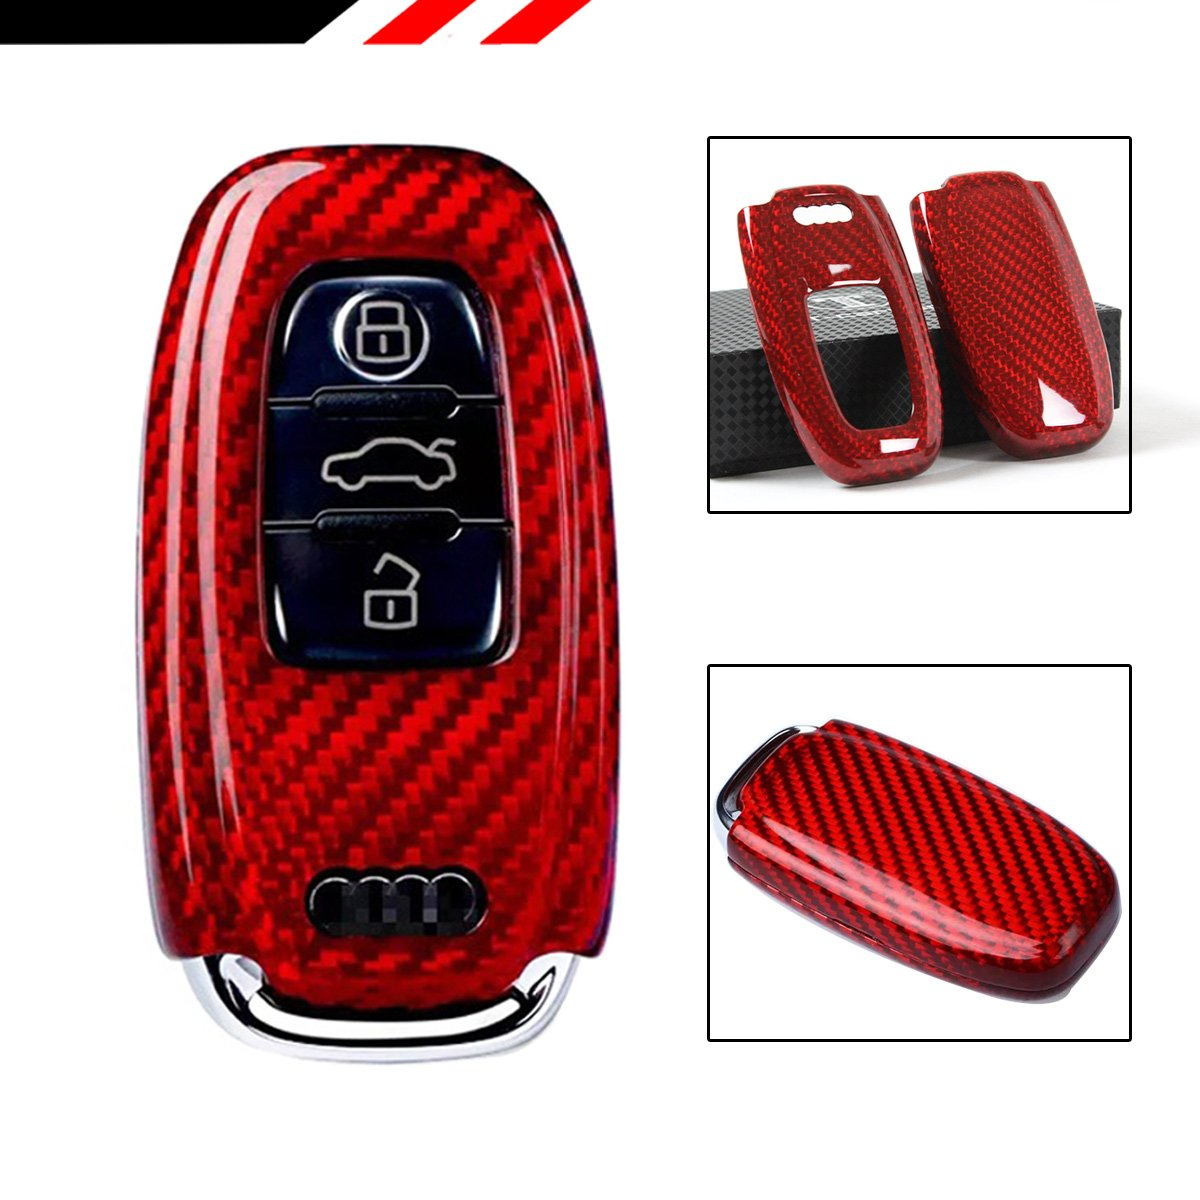 Cuztom Tuning Luxury Red Carbon Fiber Snap on Case for New Audi A3 A4 A5 A6 A7 S4 S5 S7 RS TT New Type Key Fob